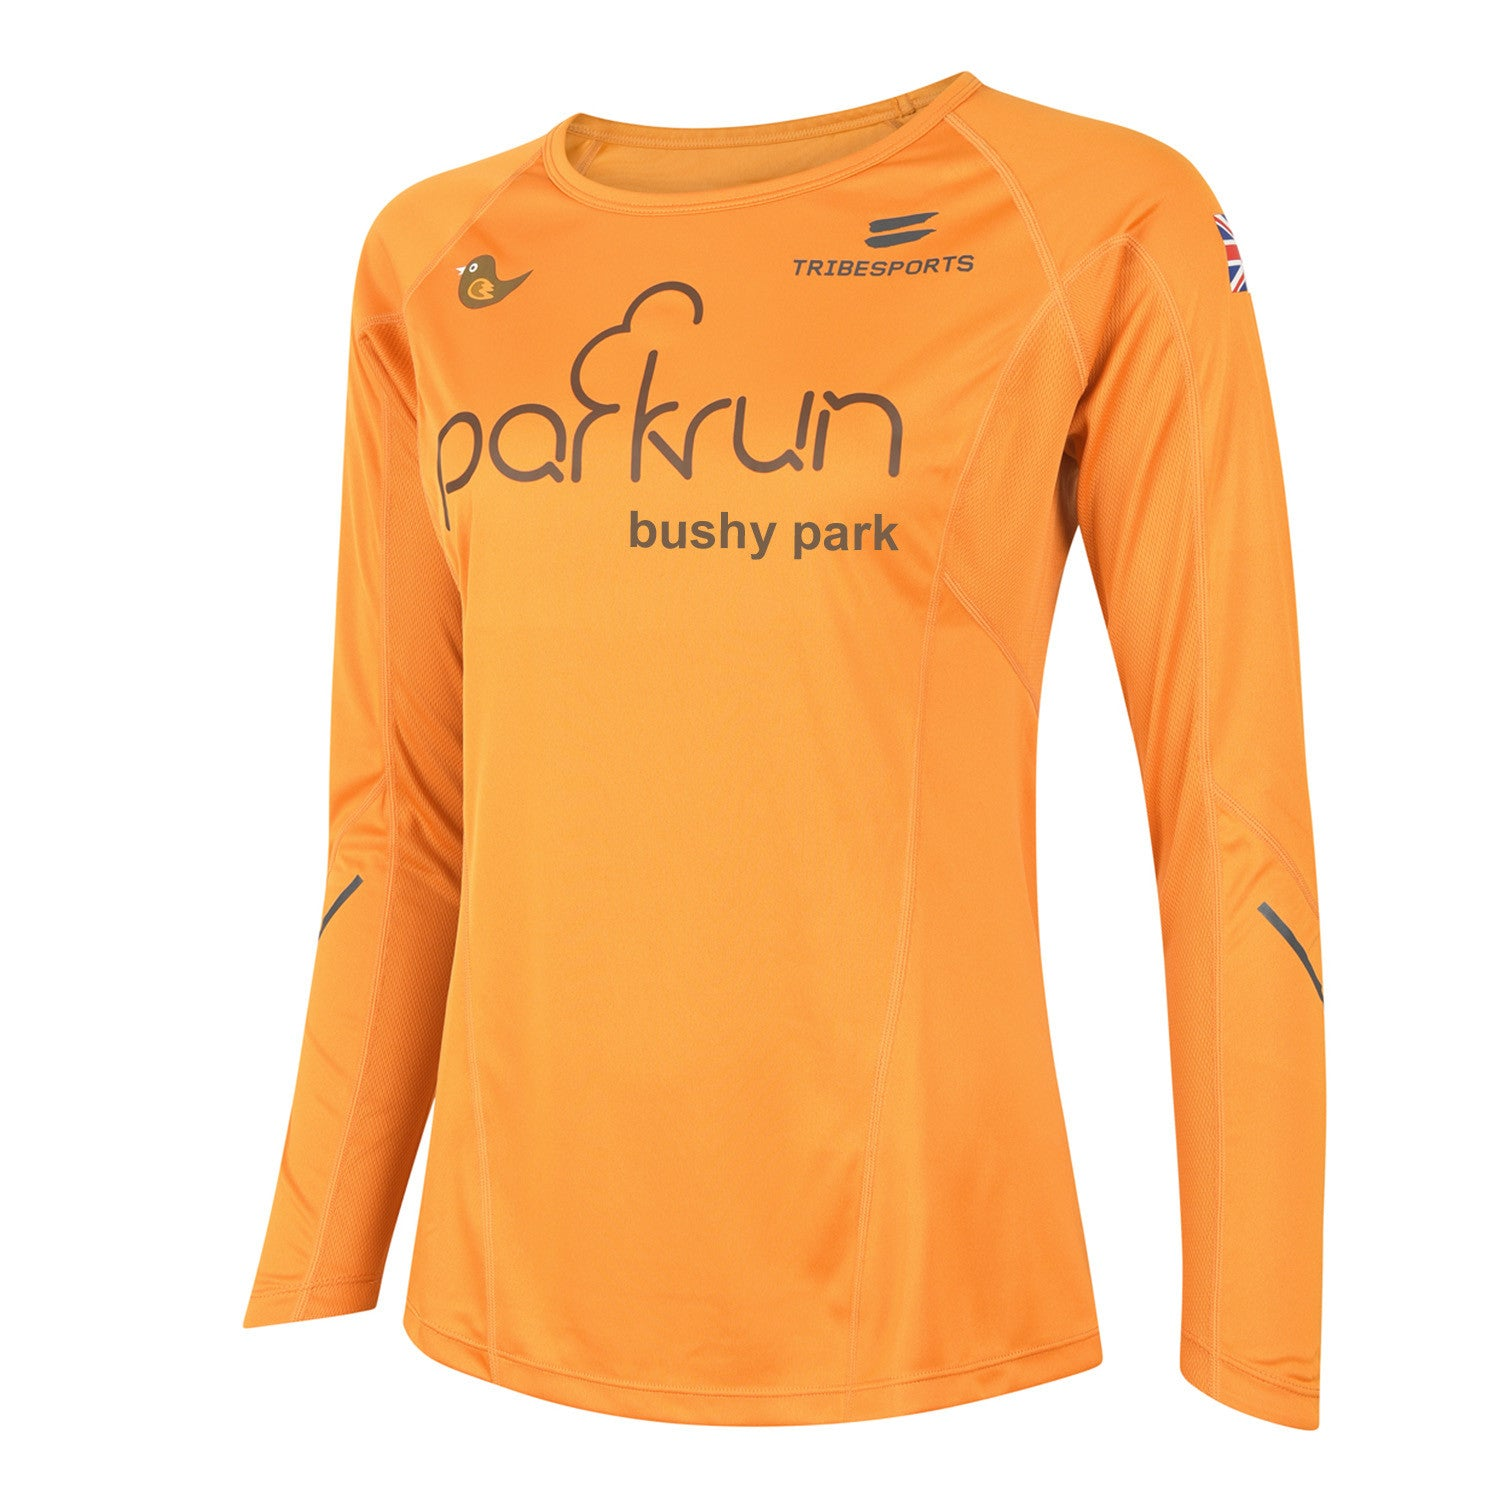 parkrun women's performance long sleeve t-shirt UK , parkrun - 4